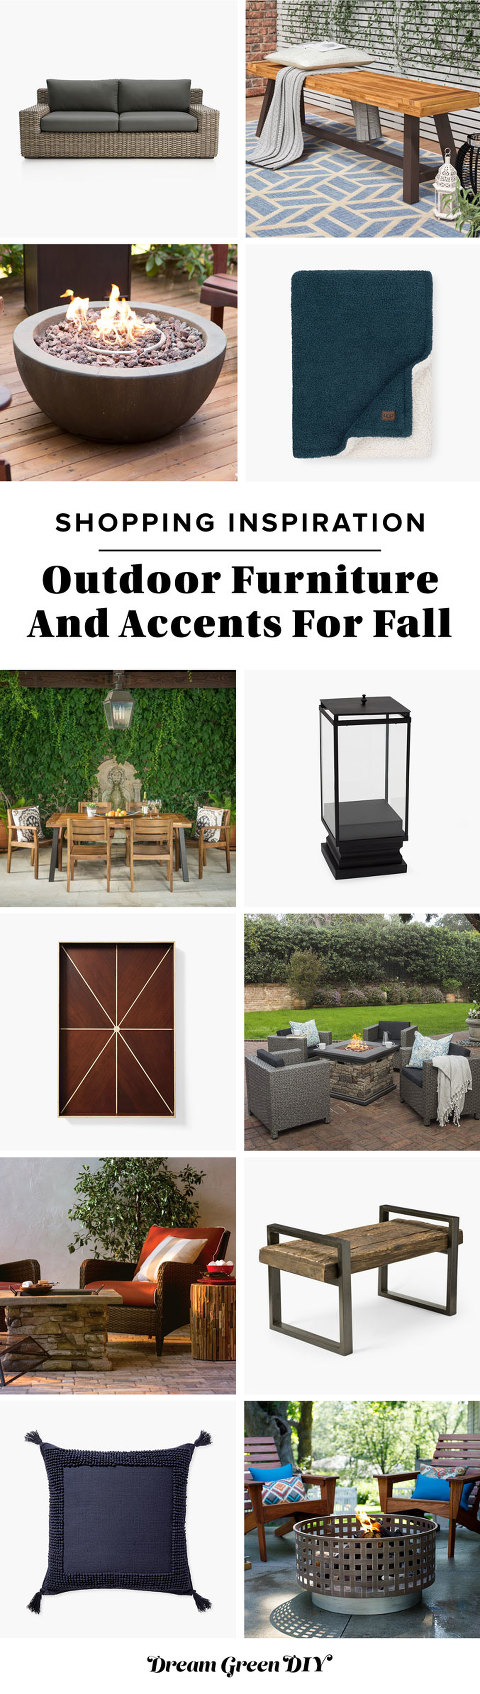 Outdoor Fall Furniture & Accessories